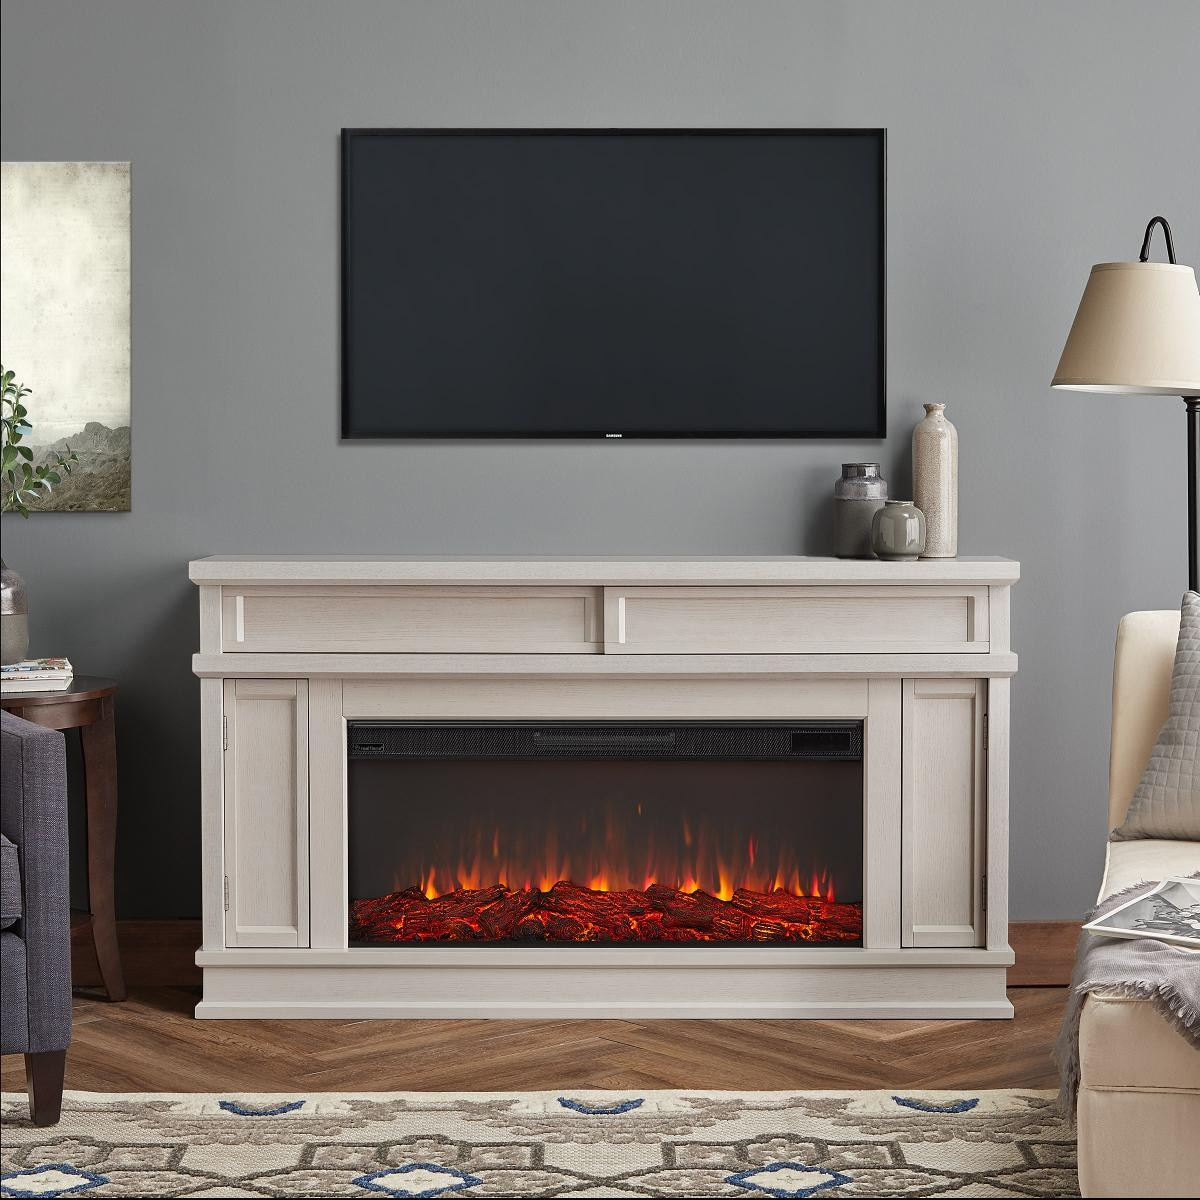 Tennyson Bookcase Electric Fireplace Electric Fireplace Mantel Kits Gas Log Guys